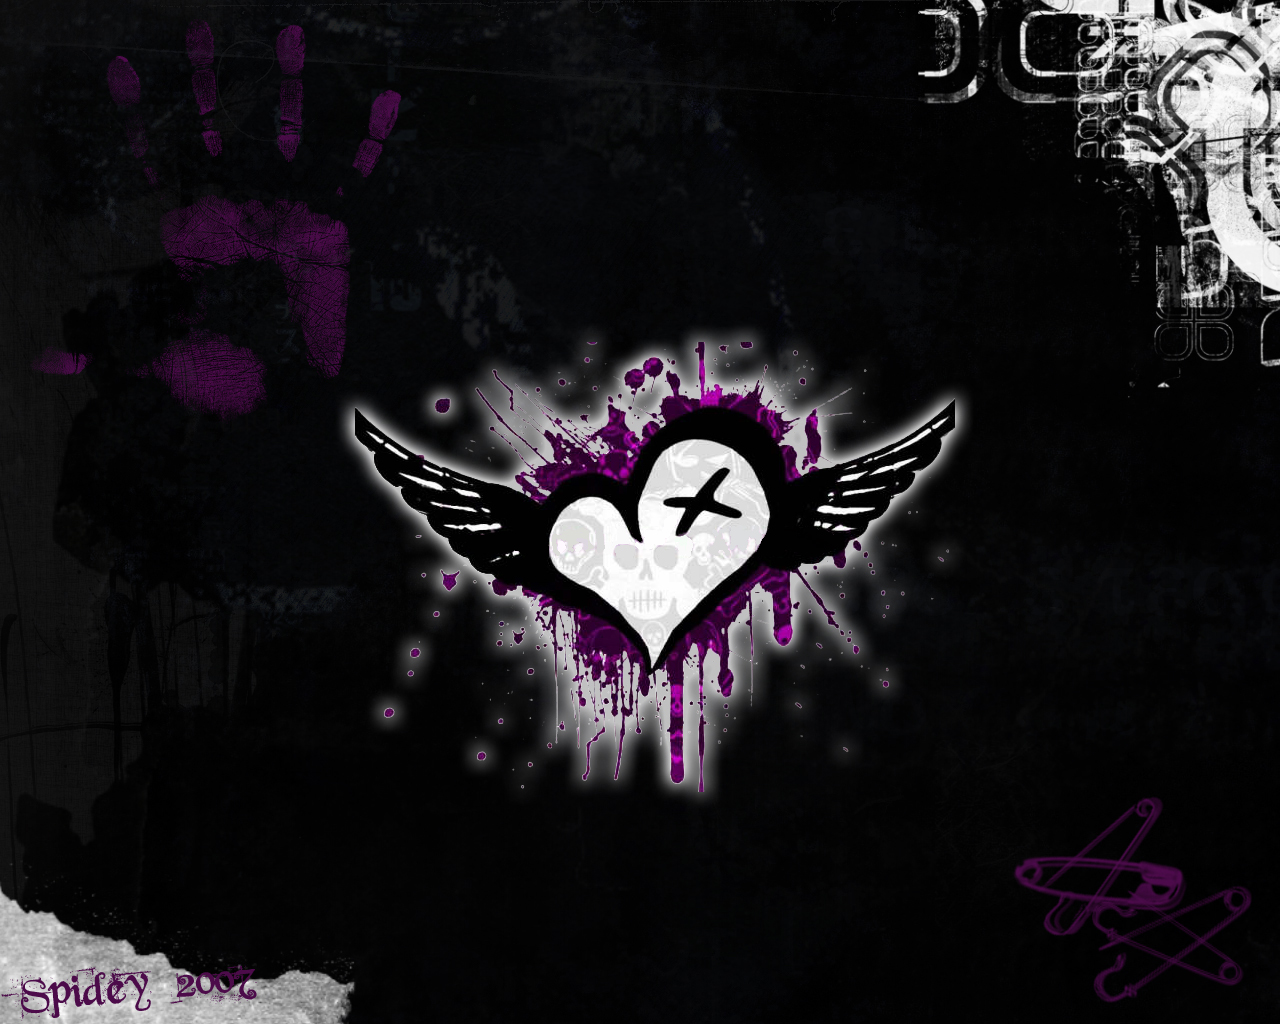 Hd Wallpaper Emo Love couple : See To World: 07/27/11